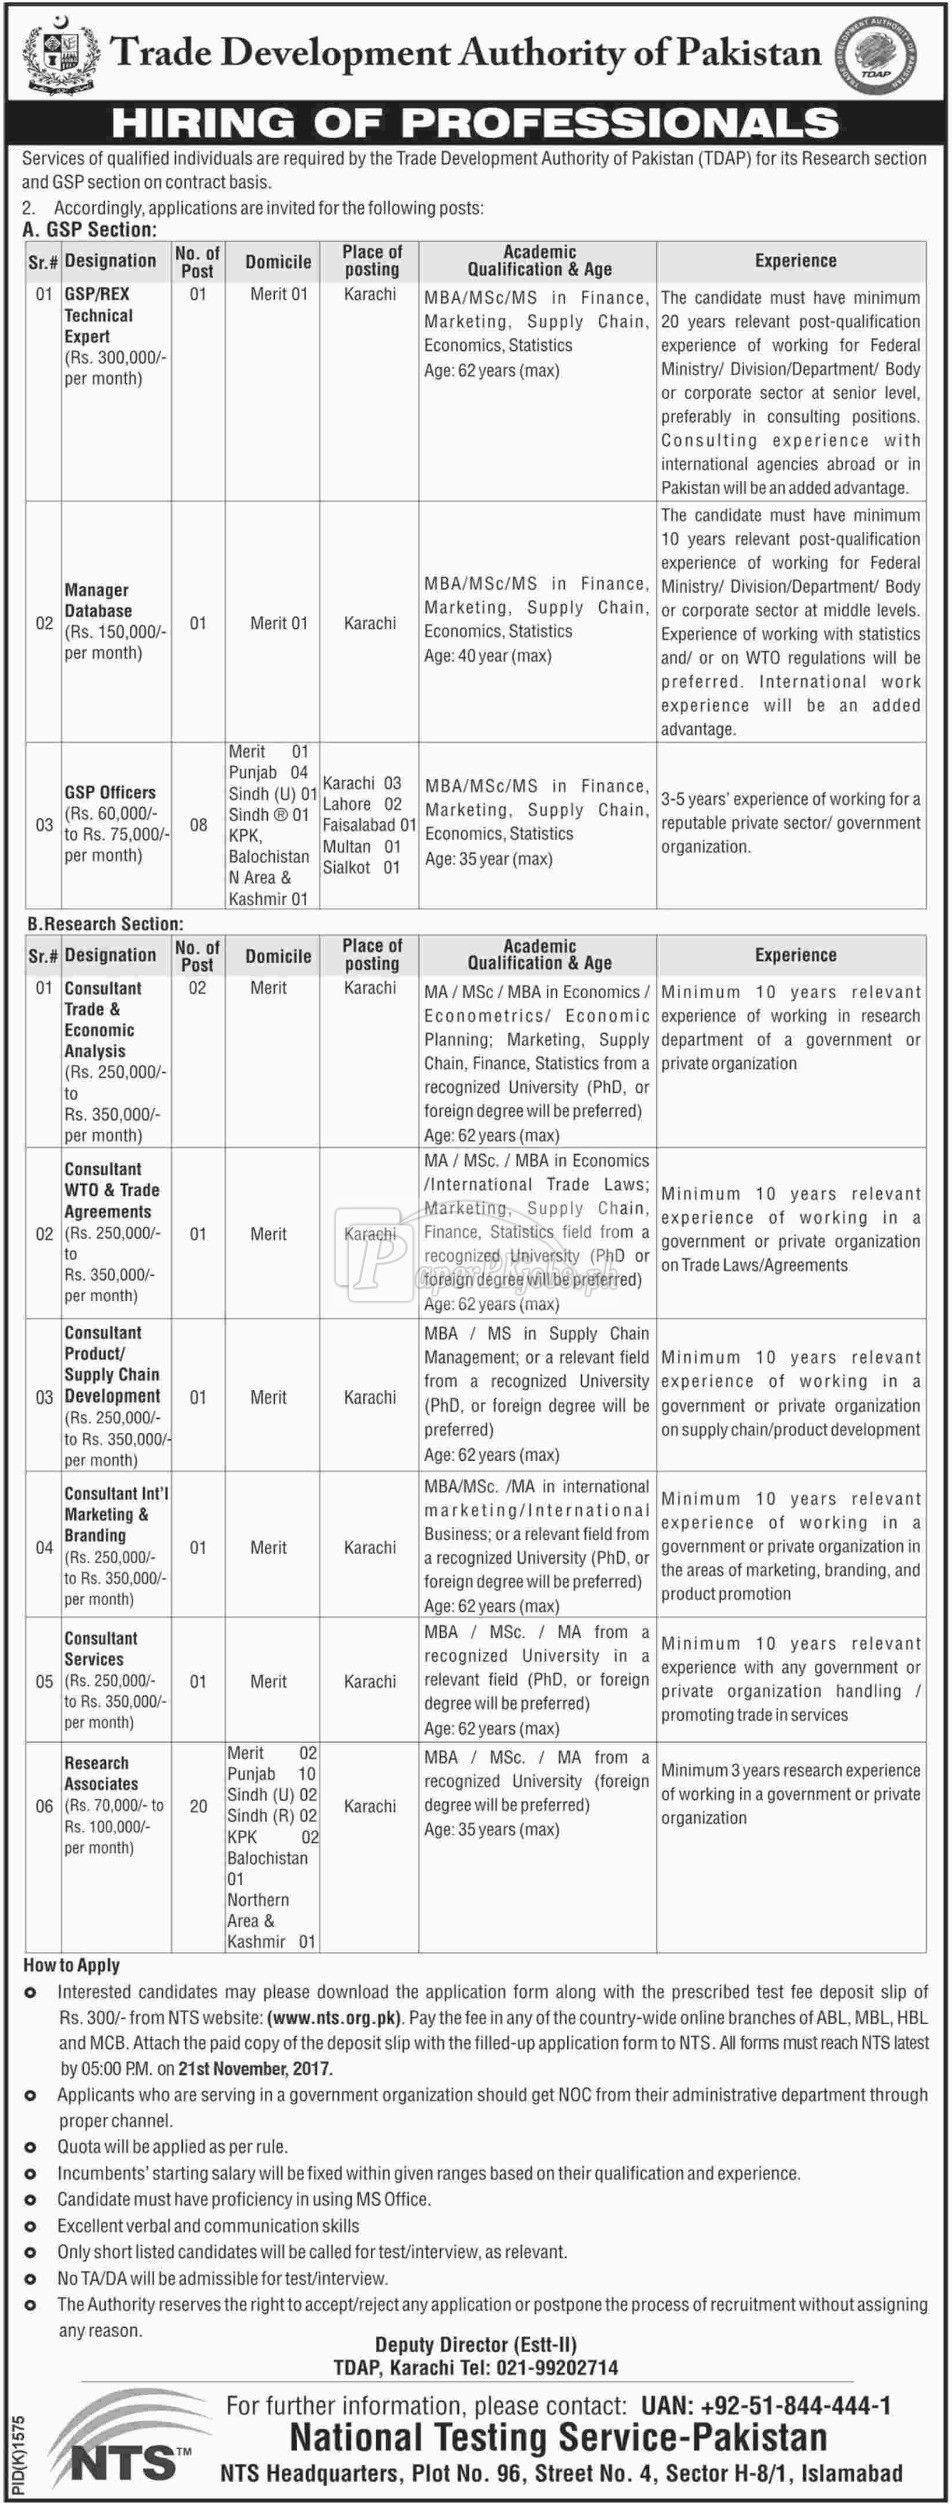 Trade Development Authority of Pakistan TDAP NTS Jobs 2017